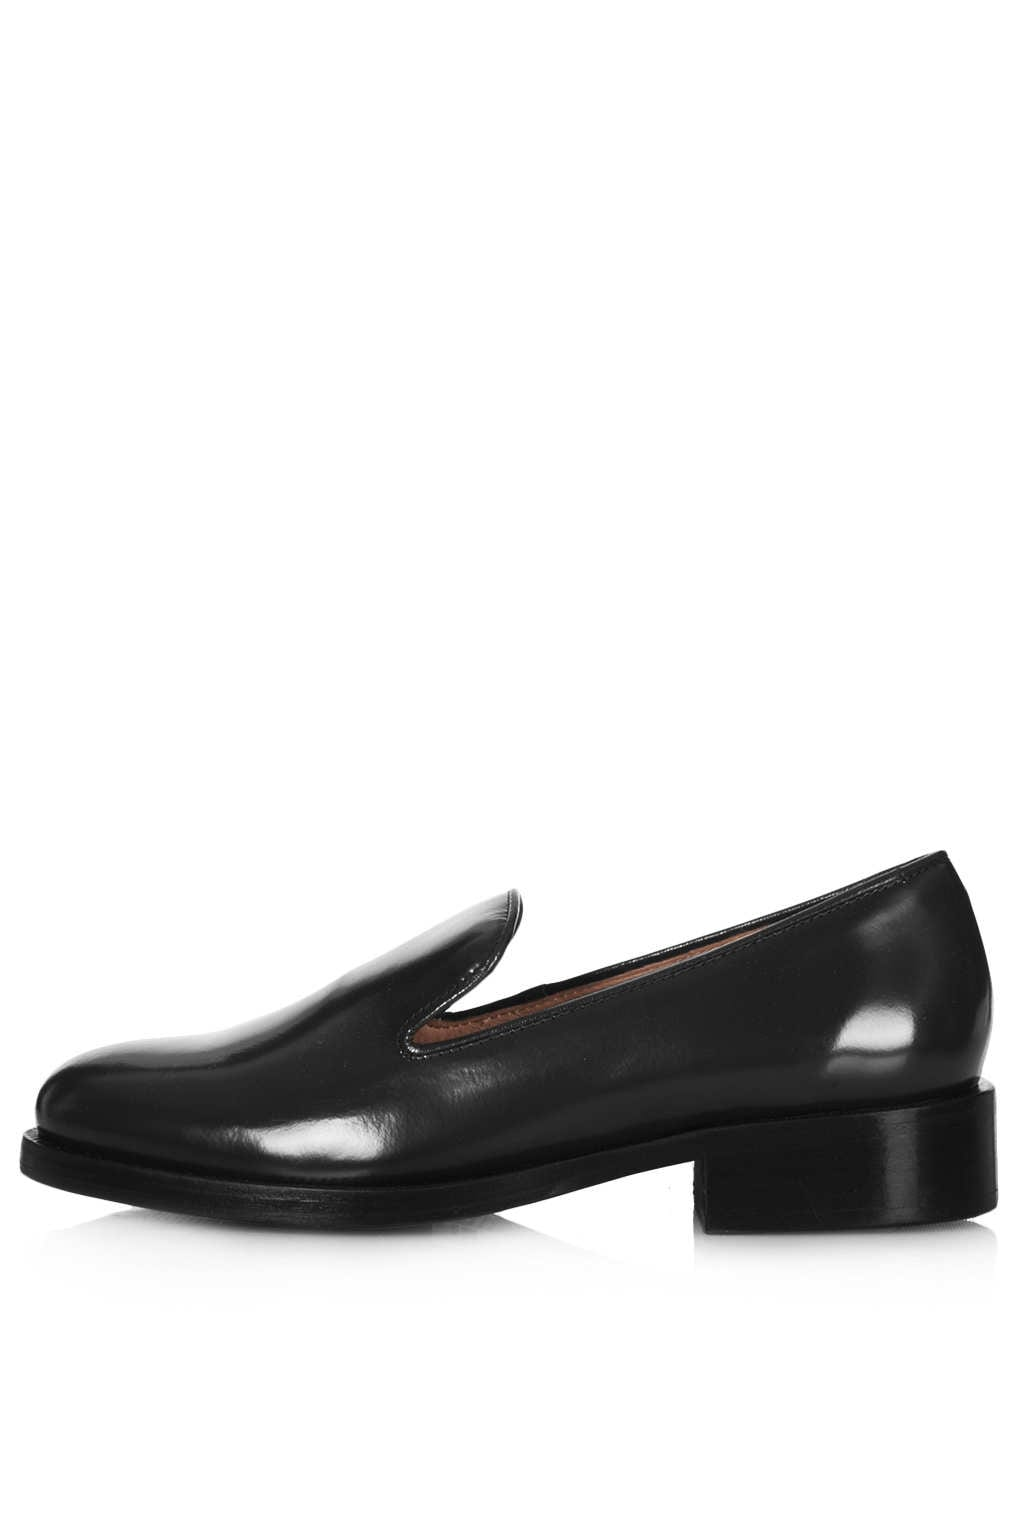 Black flat shoes for girls